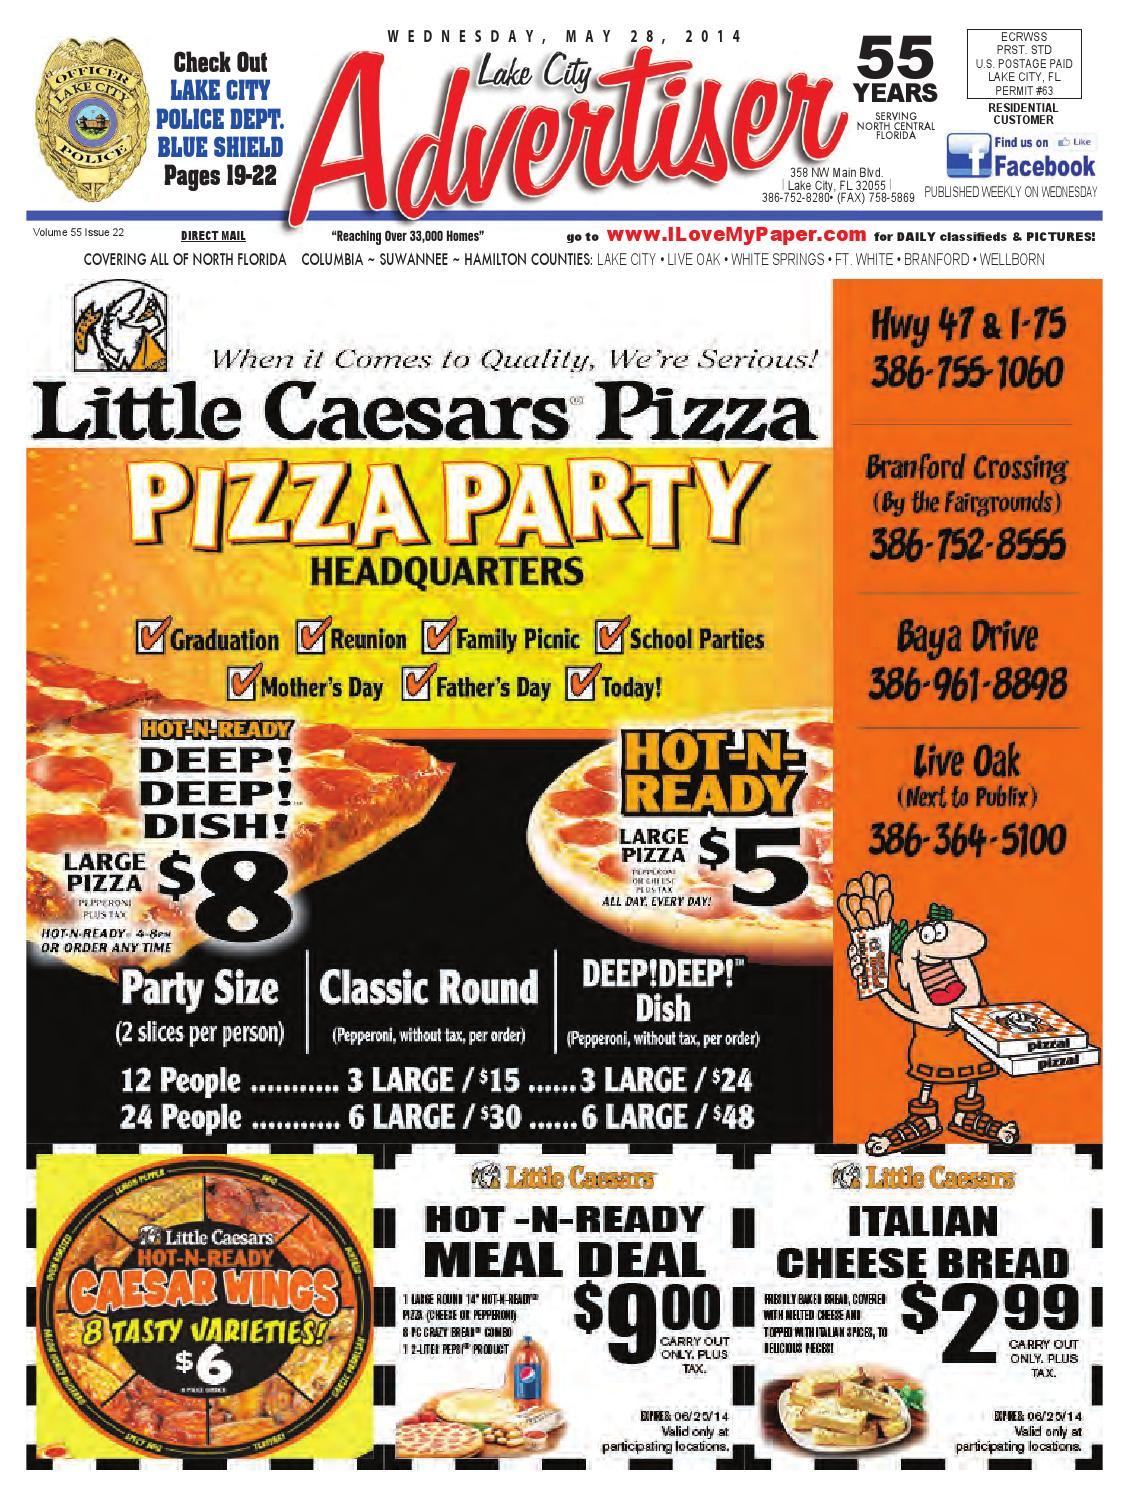 05-28-14_Advertiser by North Central Florida Advertiser - issuu